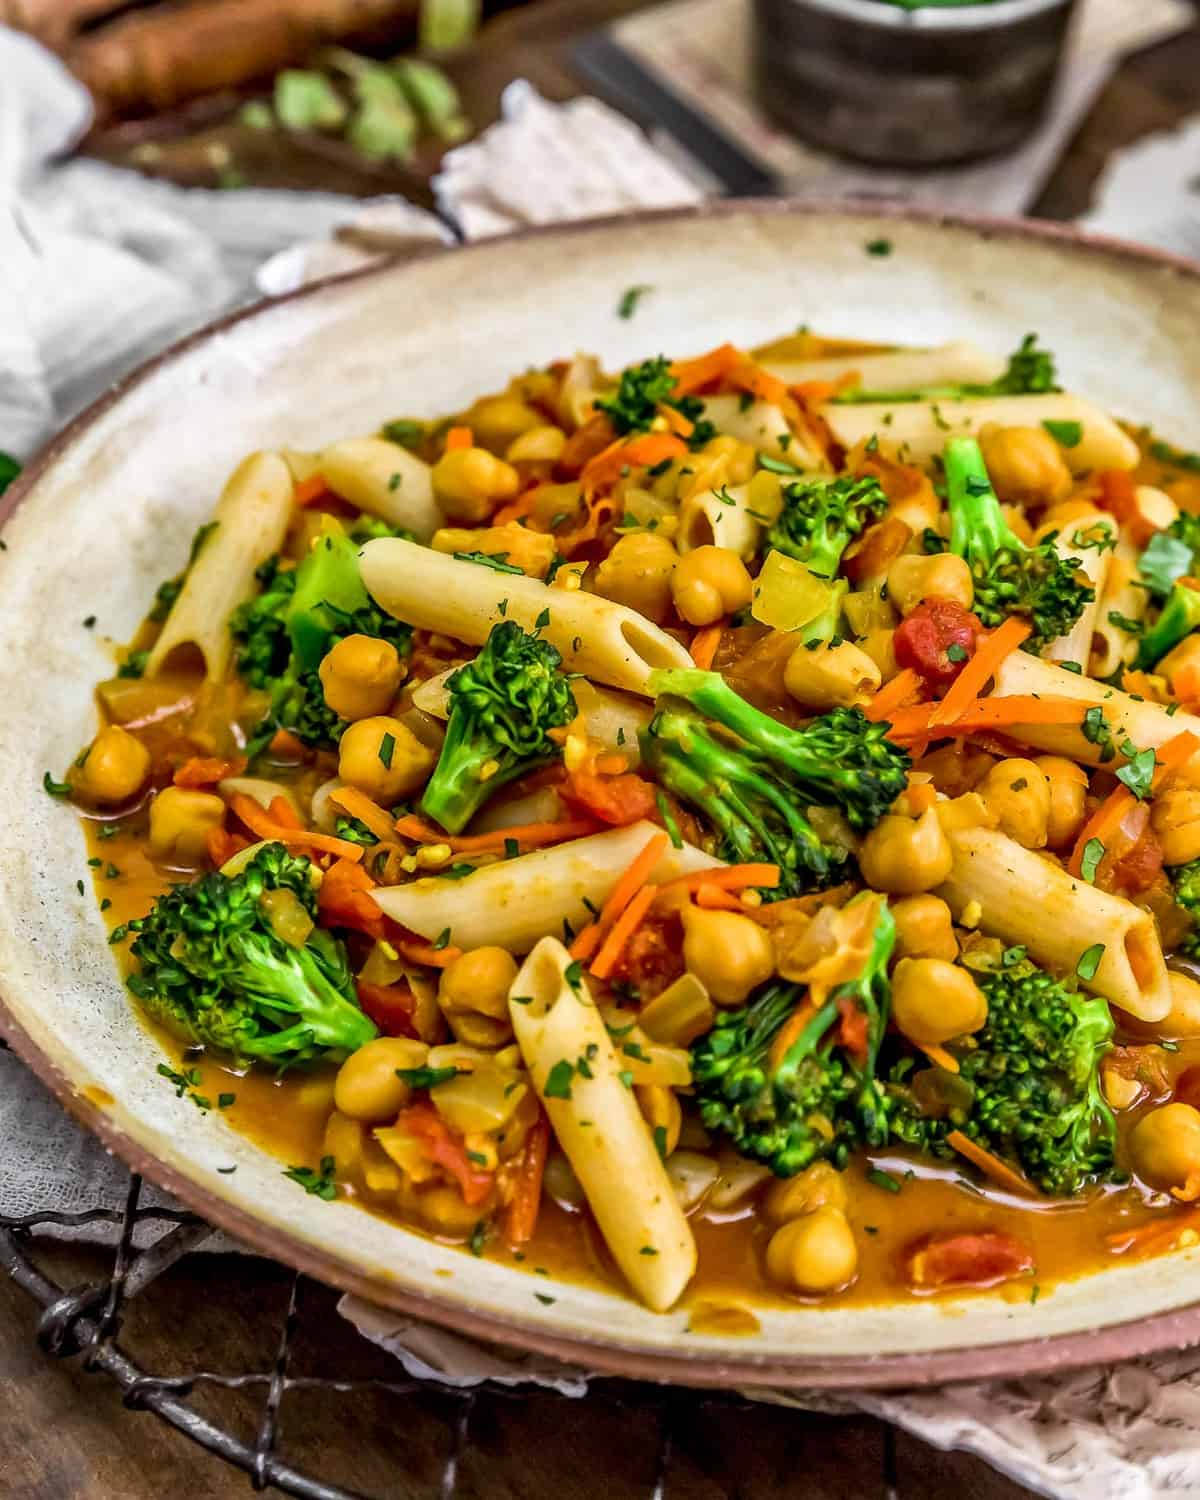 Plate of Curry Broccoli and Pasta